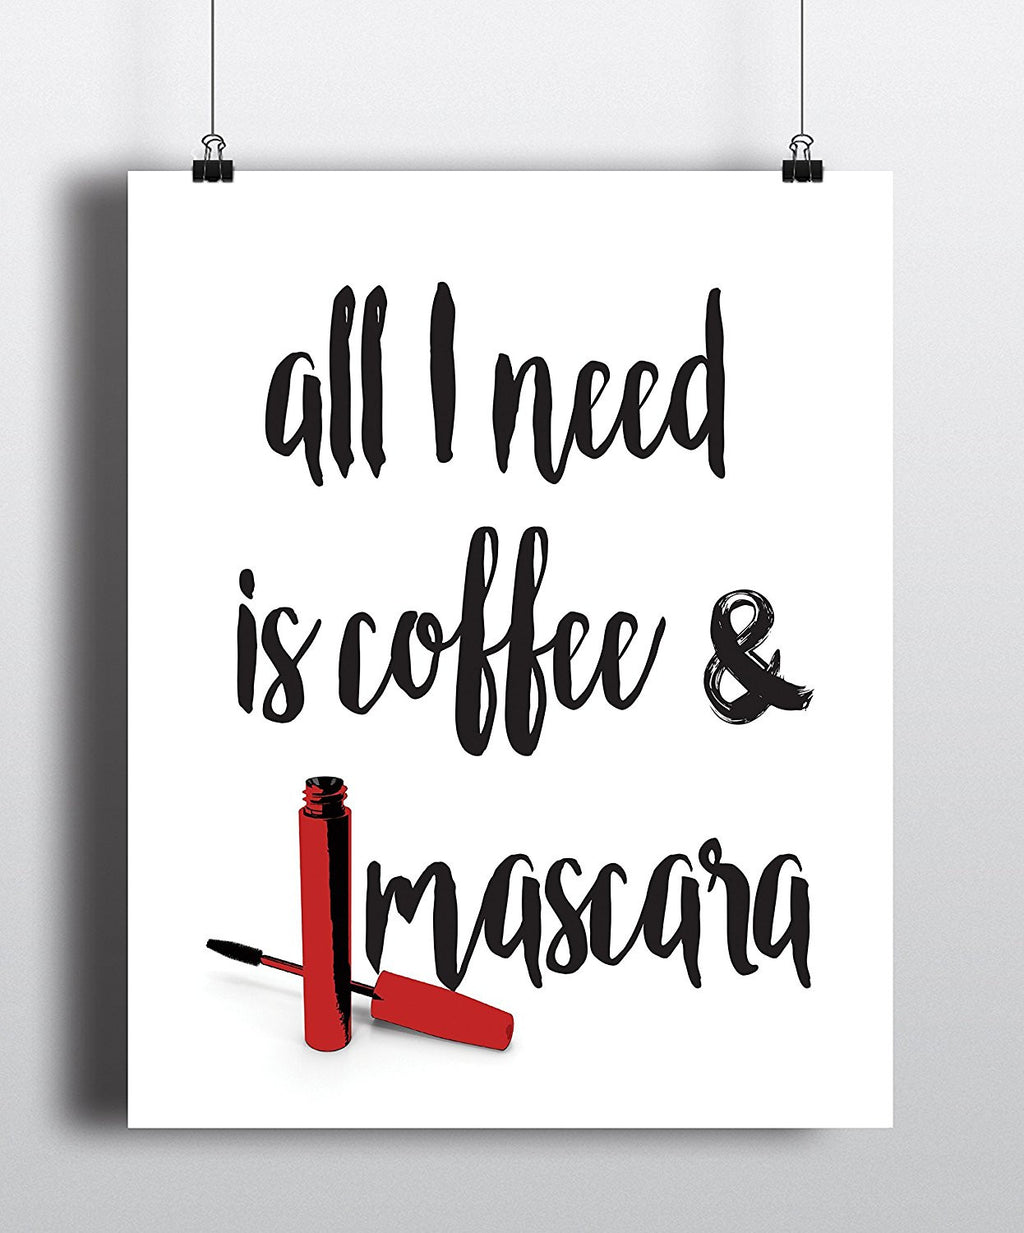 All I need is coffee and mascara Quote Art Print - Unframed